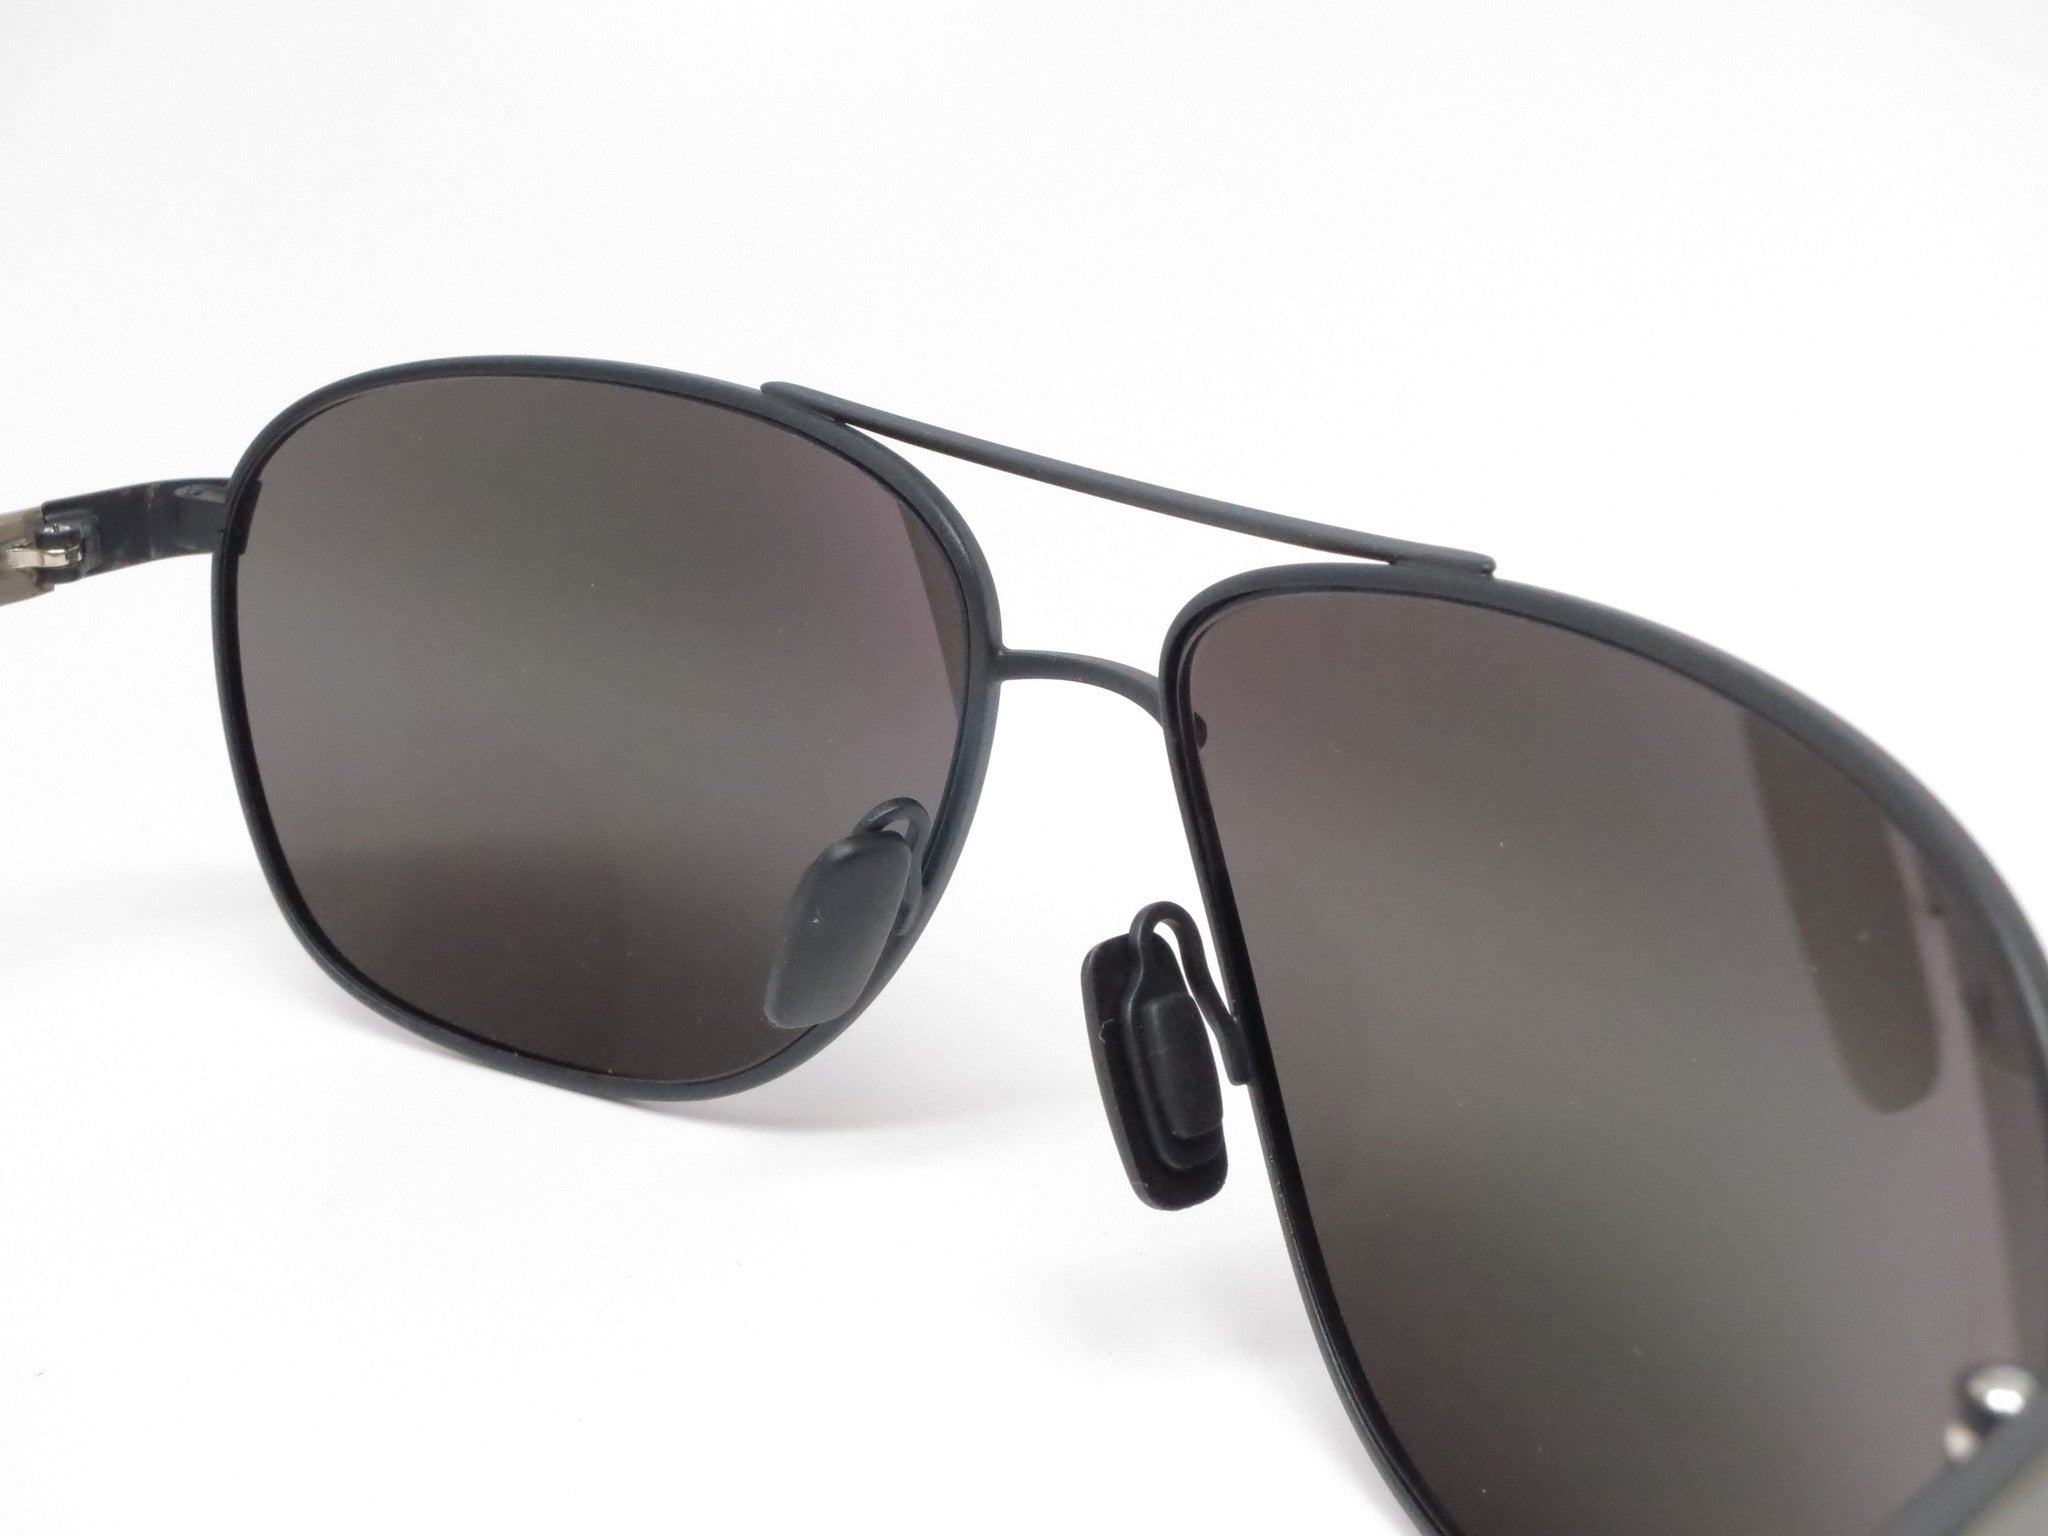 33082280308c Maui Jim Castles MJ 728-2M Matte Black Polarized Sunglasses - Eye ...